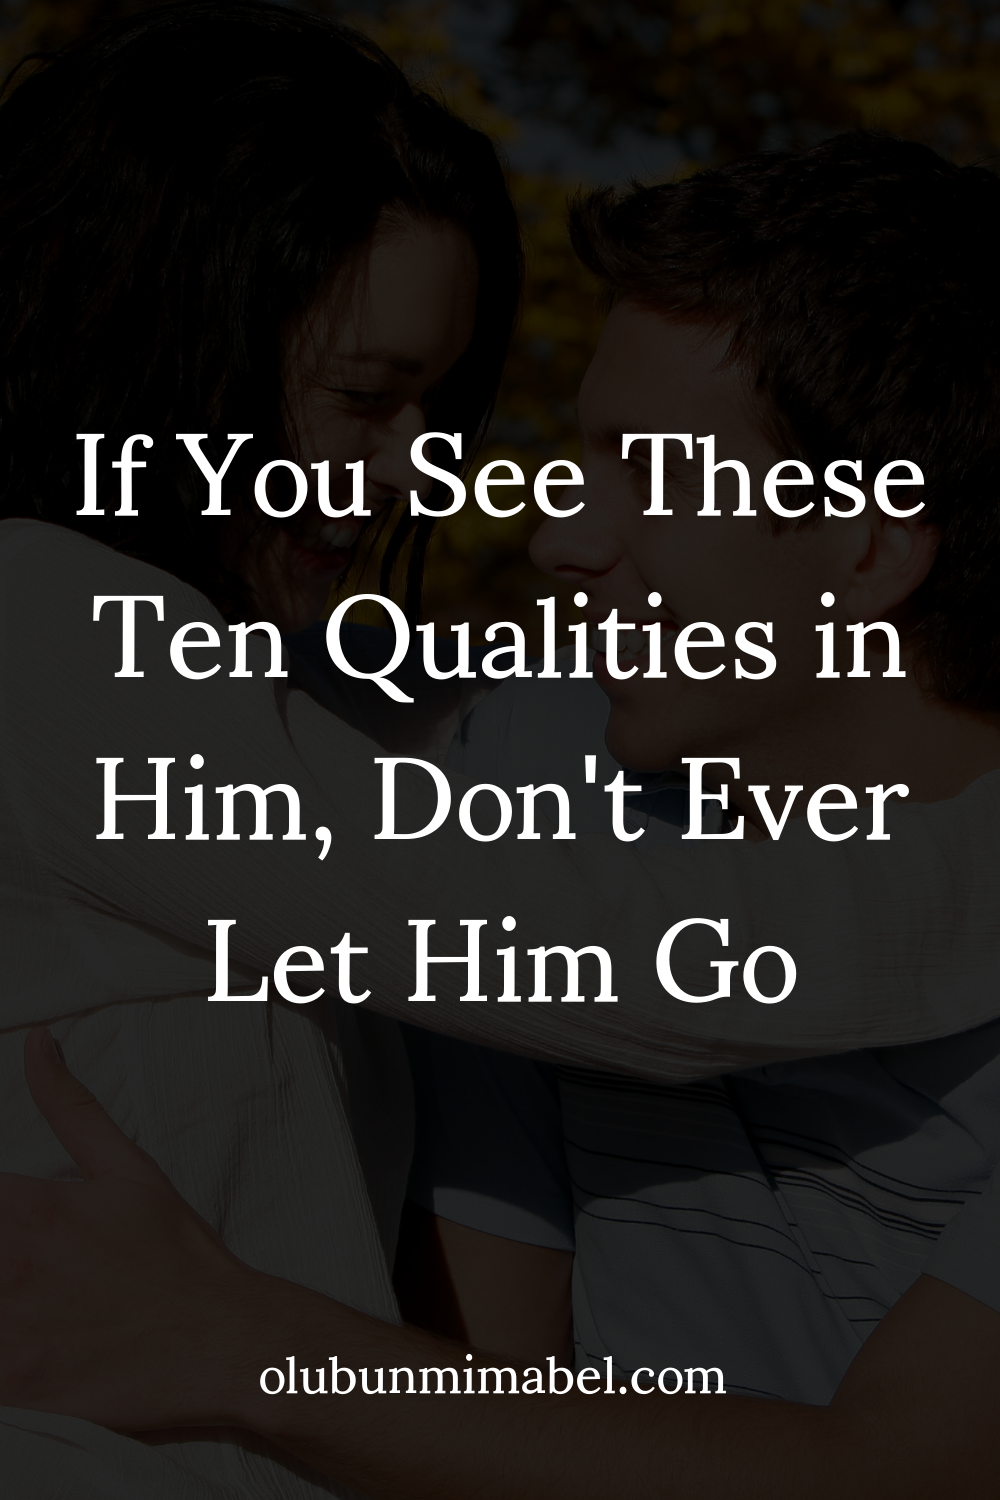 10 Qualities to Look For in a Man